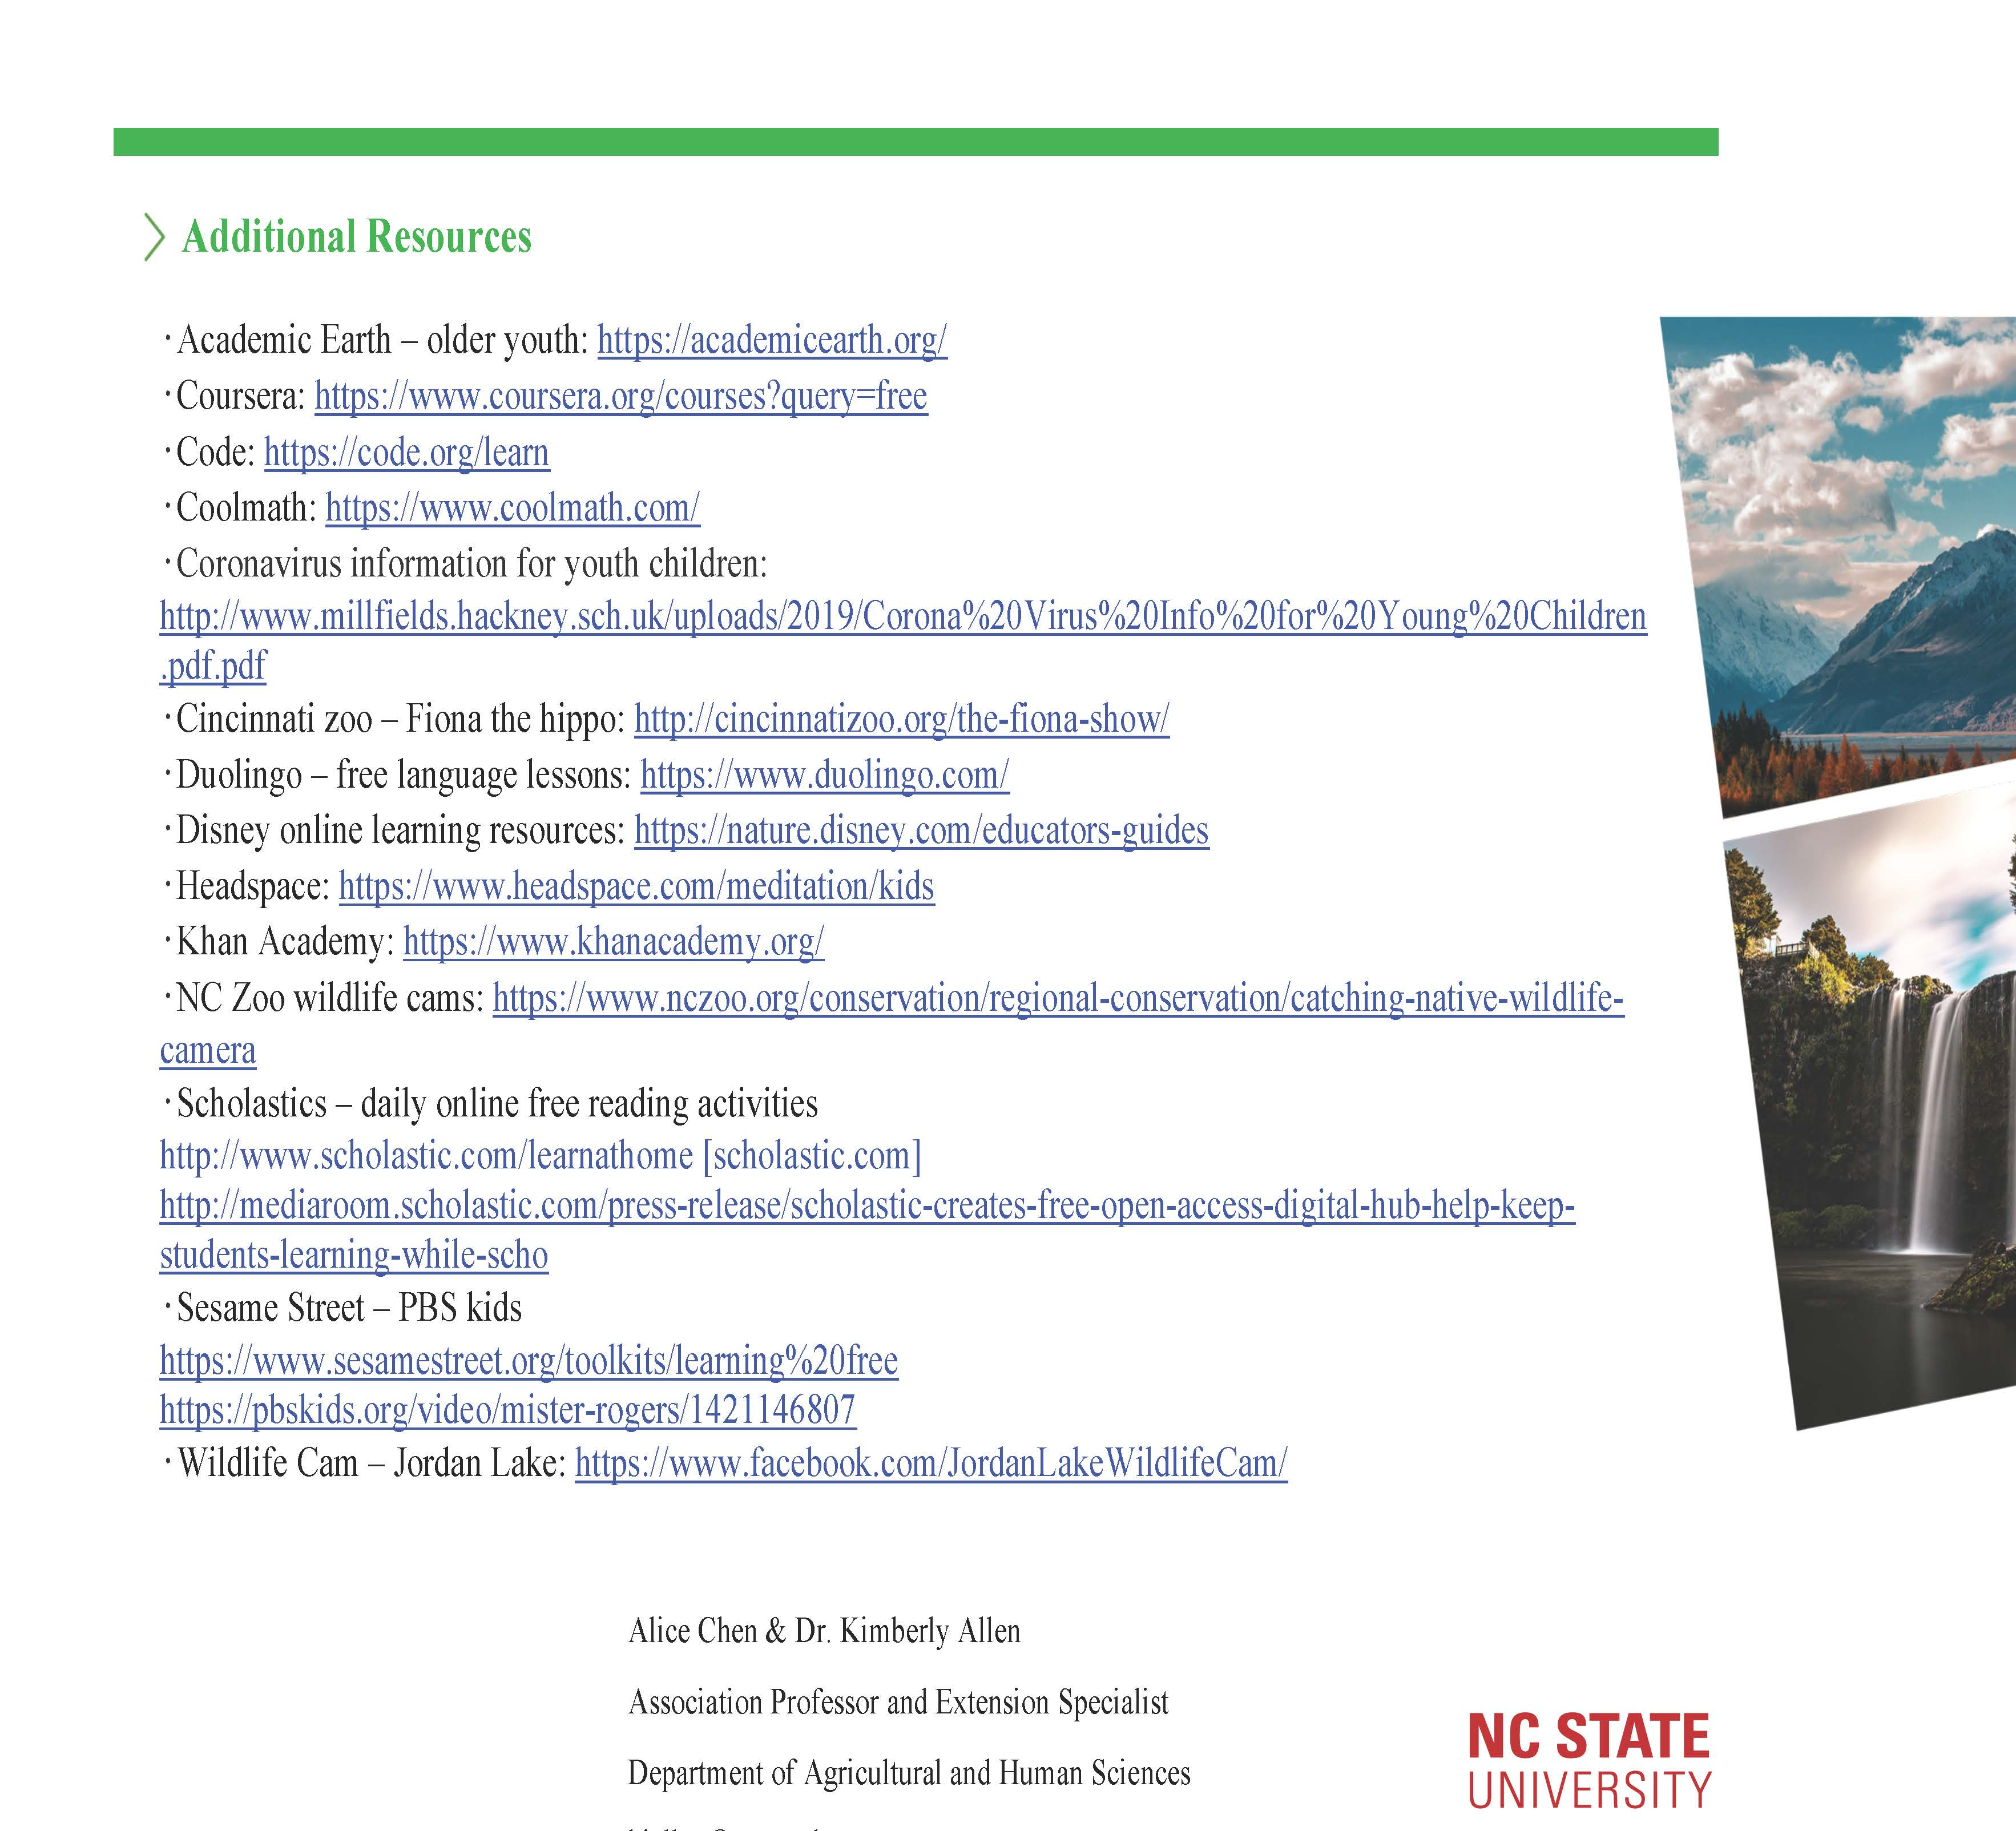 Resources page 3